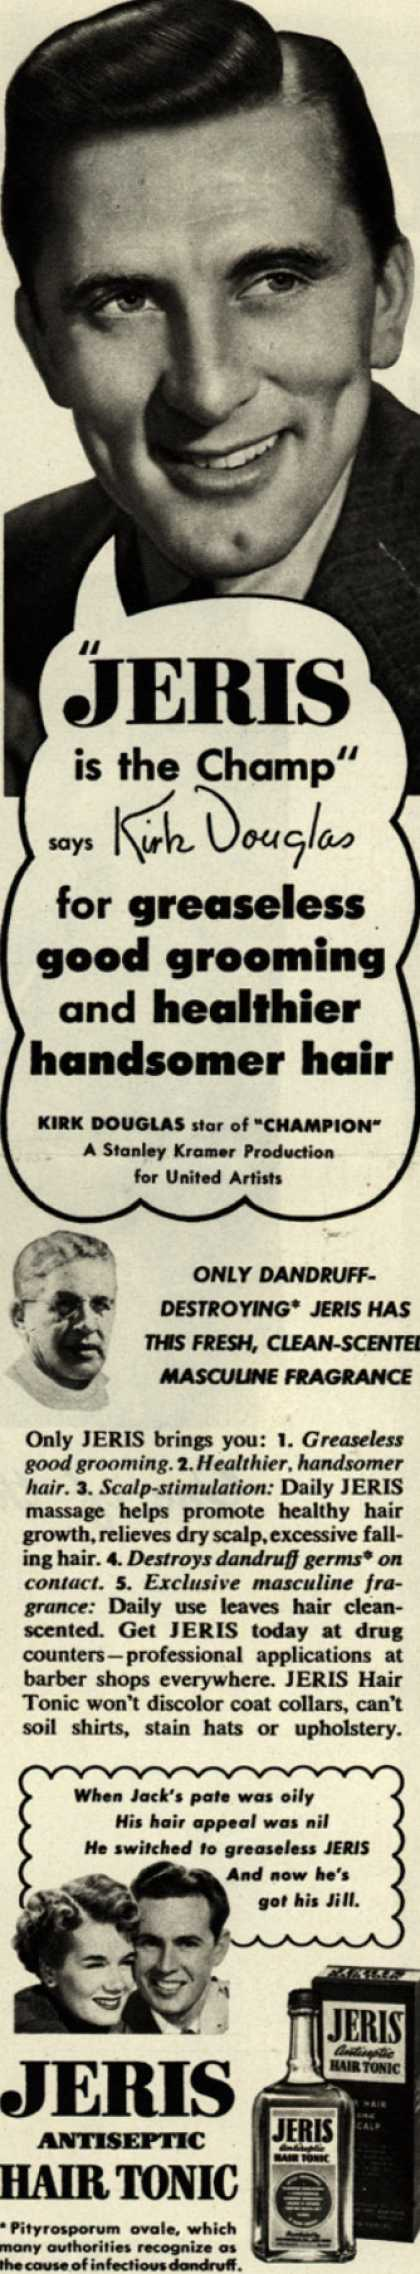 "Jeri's hair tonic – ""JERIS is the Champ"" says Kirk Douglas for greaseless good grooming and healthier handsomer hair (1950)"